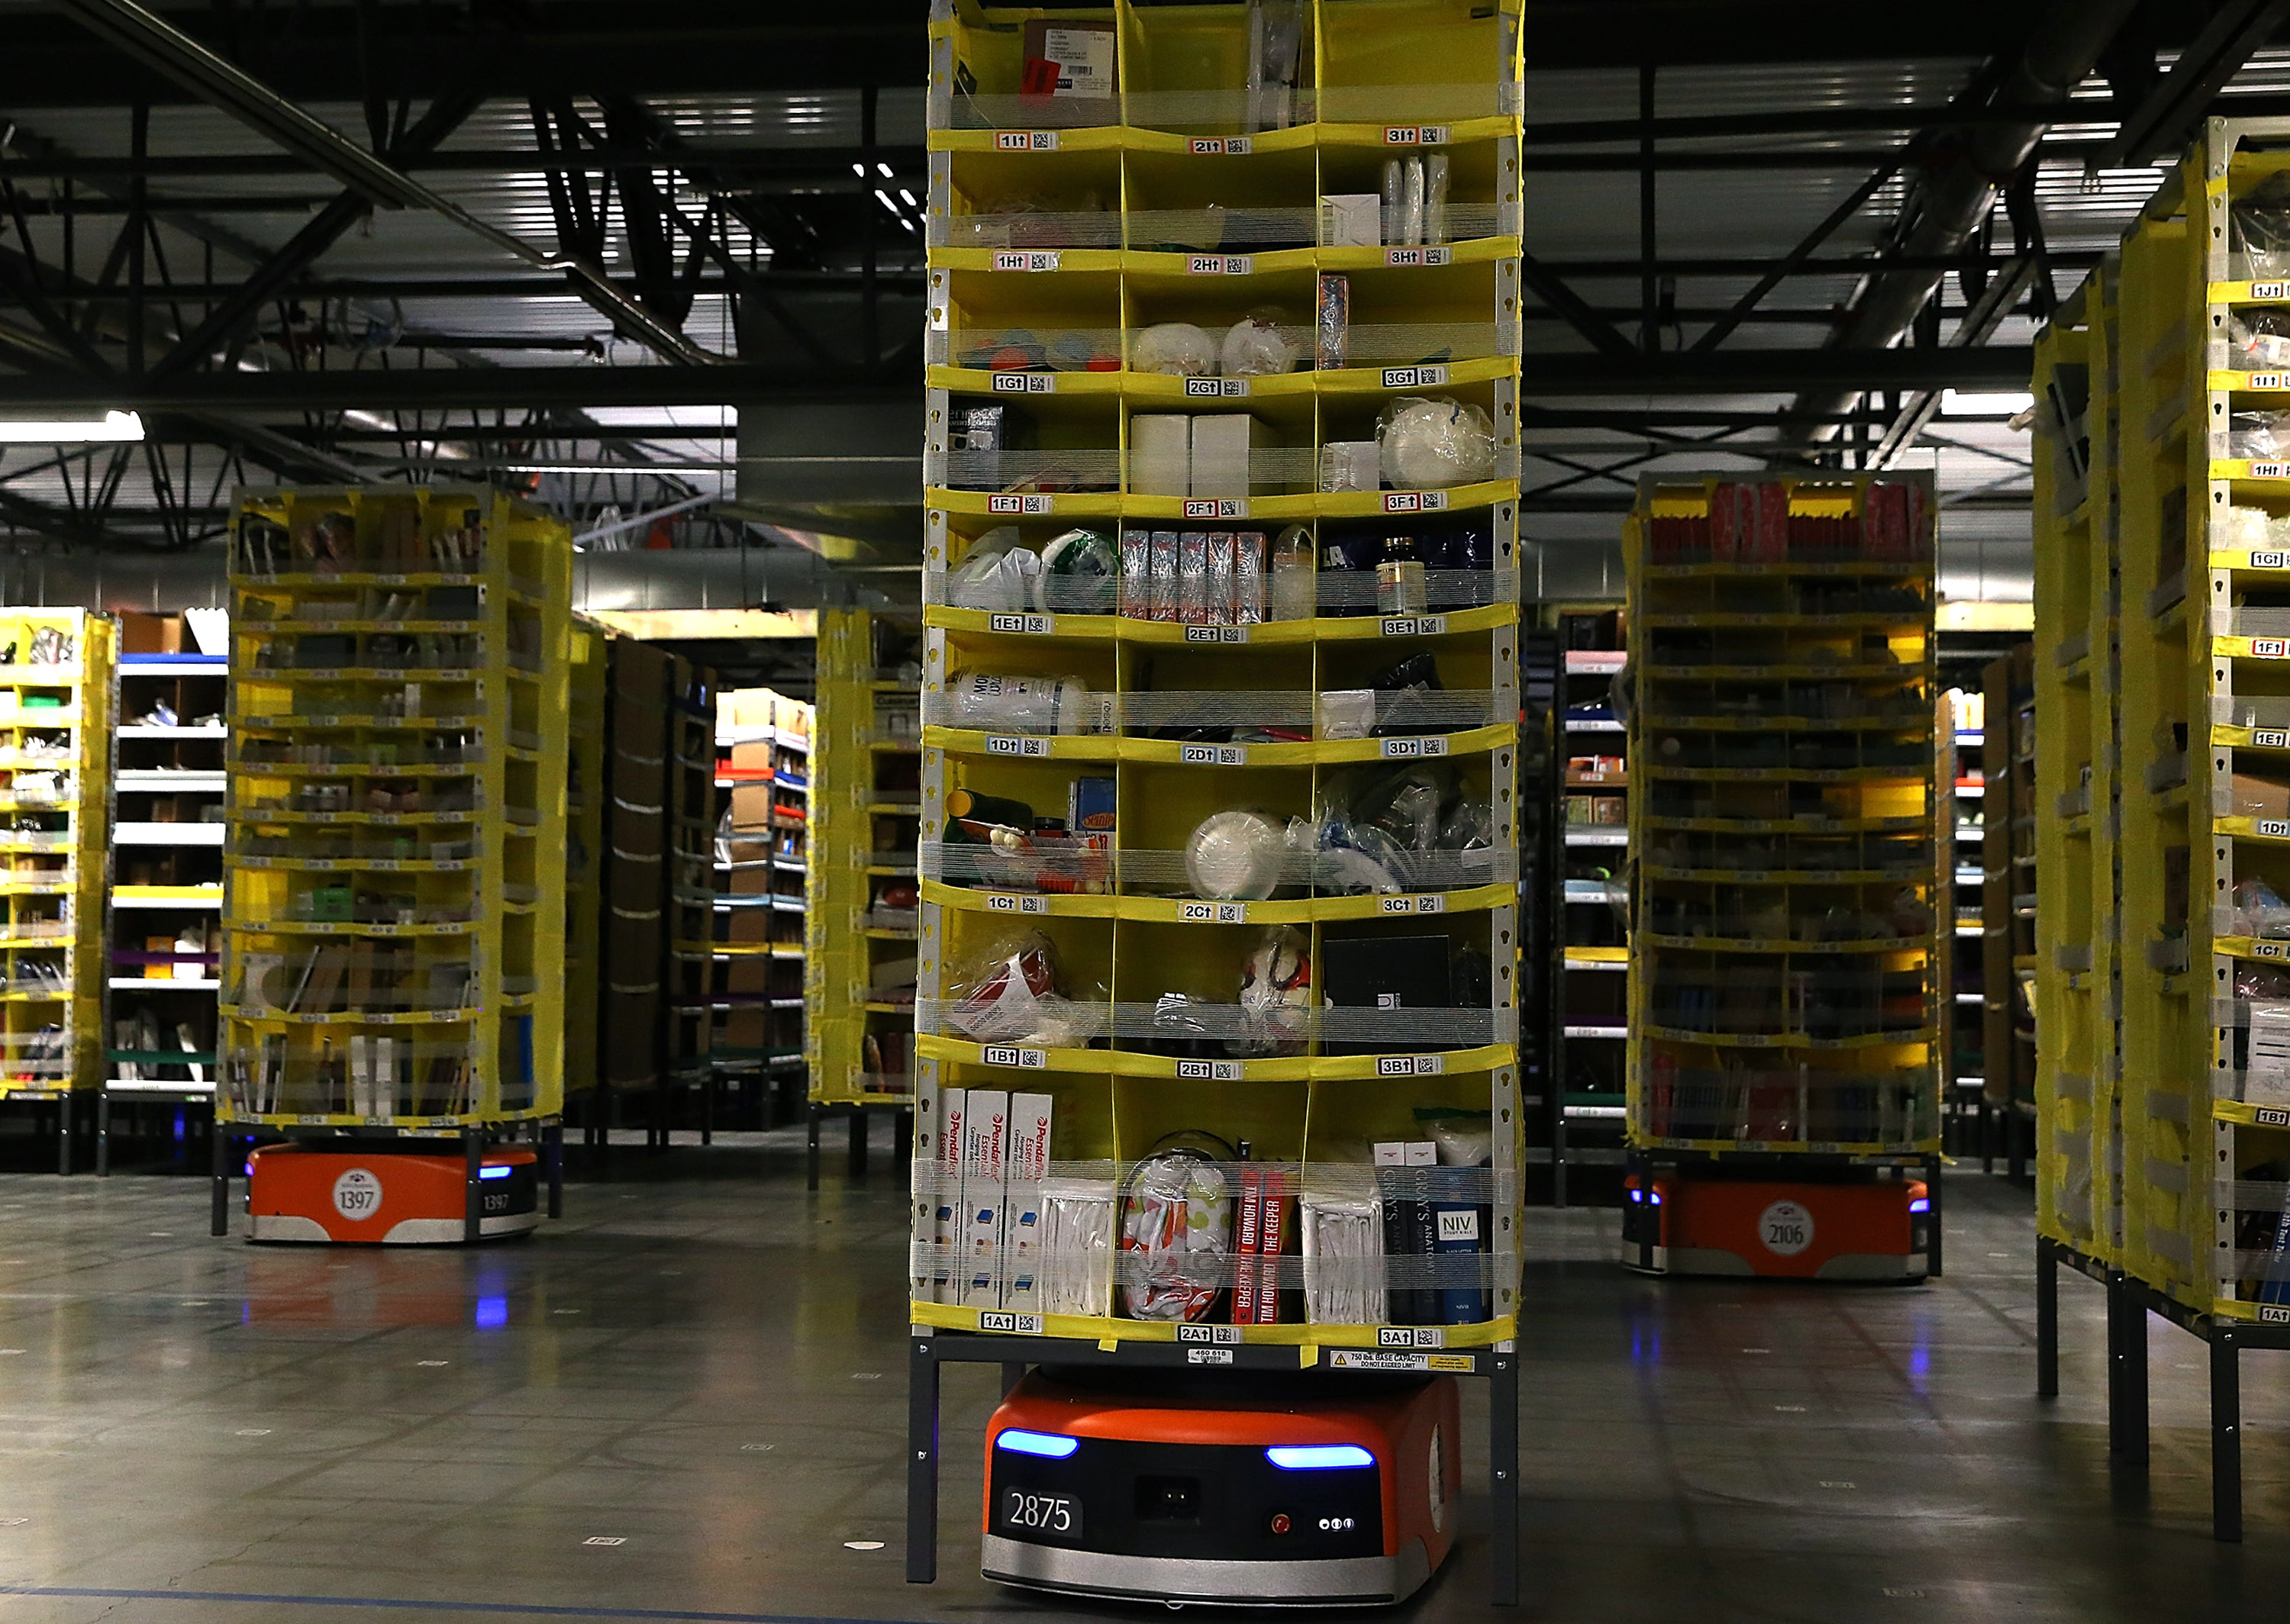 Amazon purchased Kiva, which makes warehouse robots, to help run its fulfillment centers.